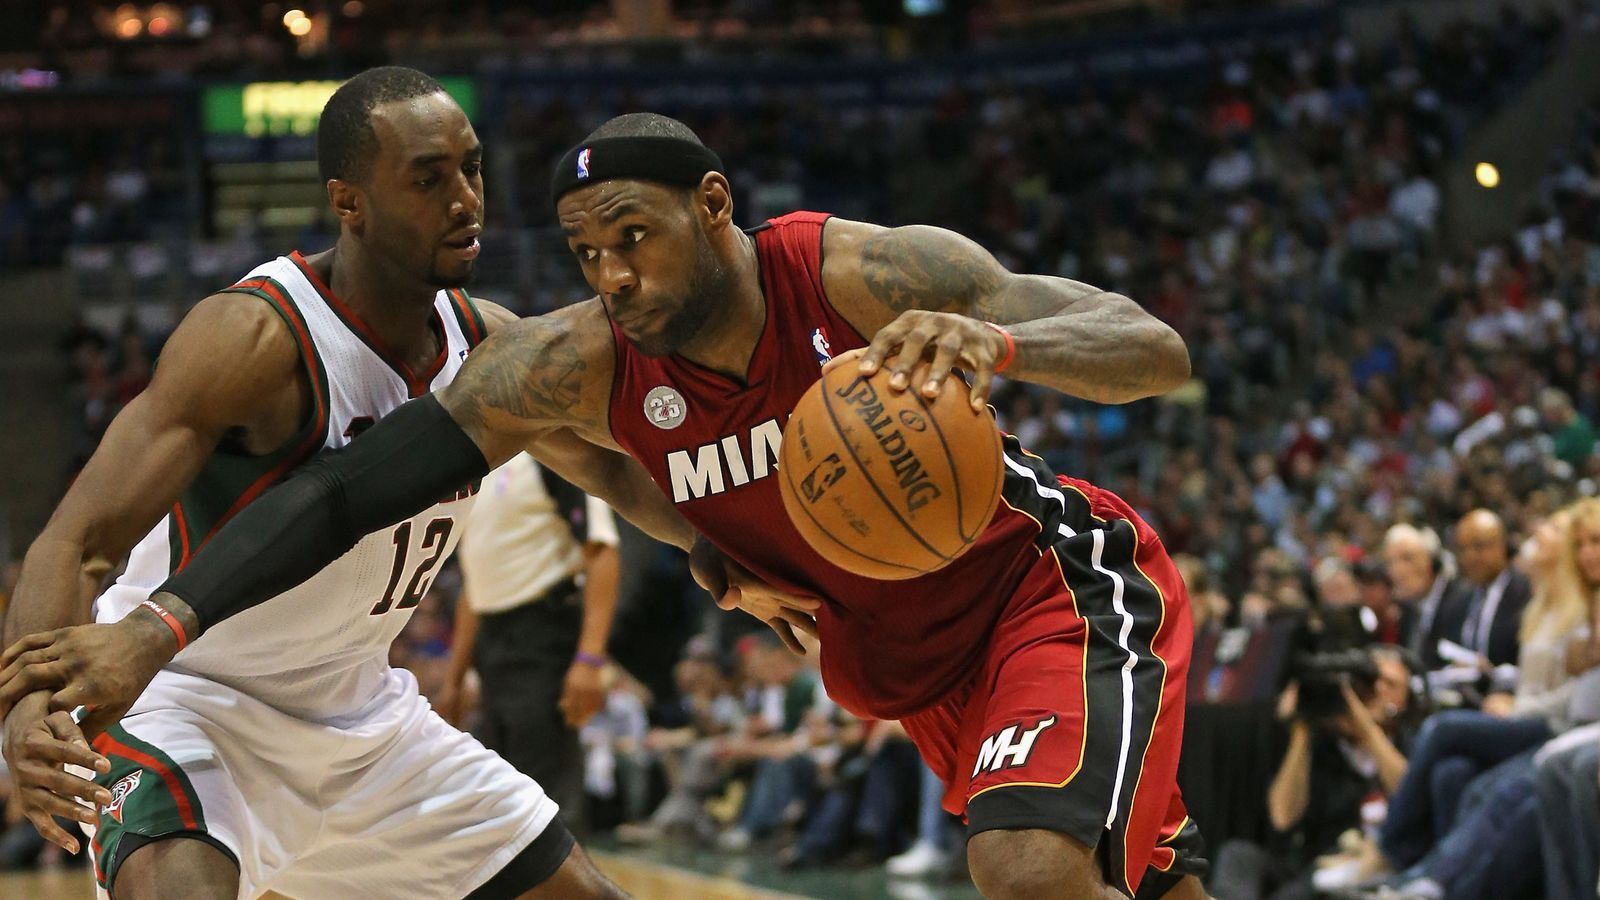 Heat Vs Bucks Image: Heat Vs. Bucks Game #4: Miami Sweeps Milwaukee Out Of